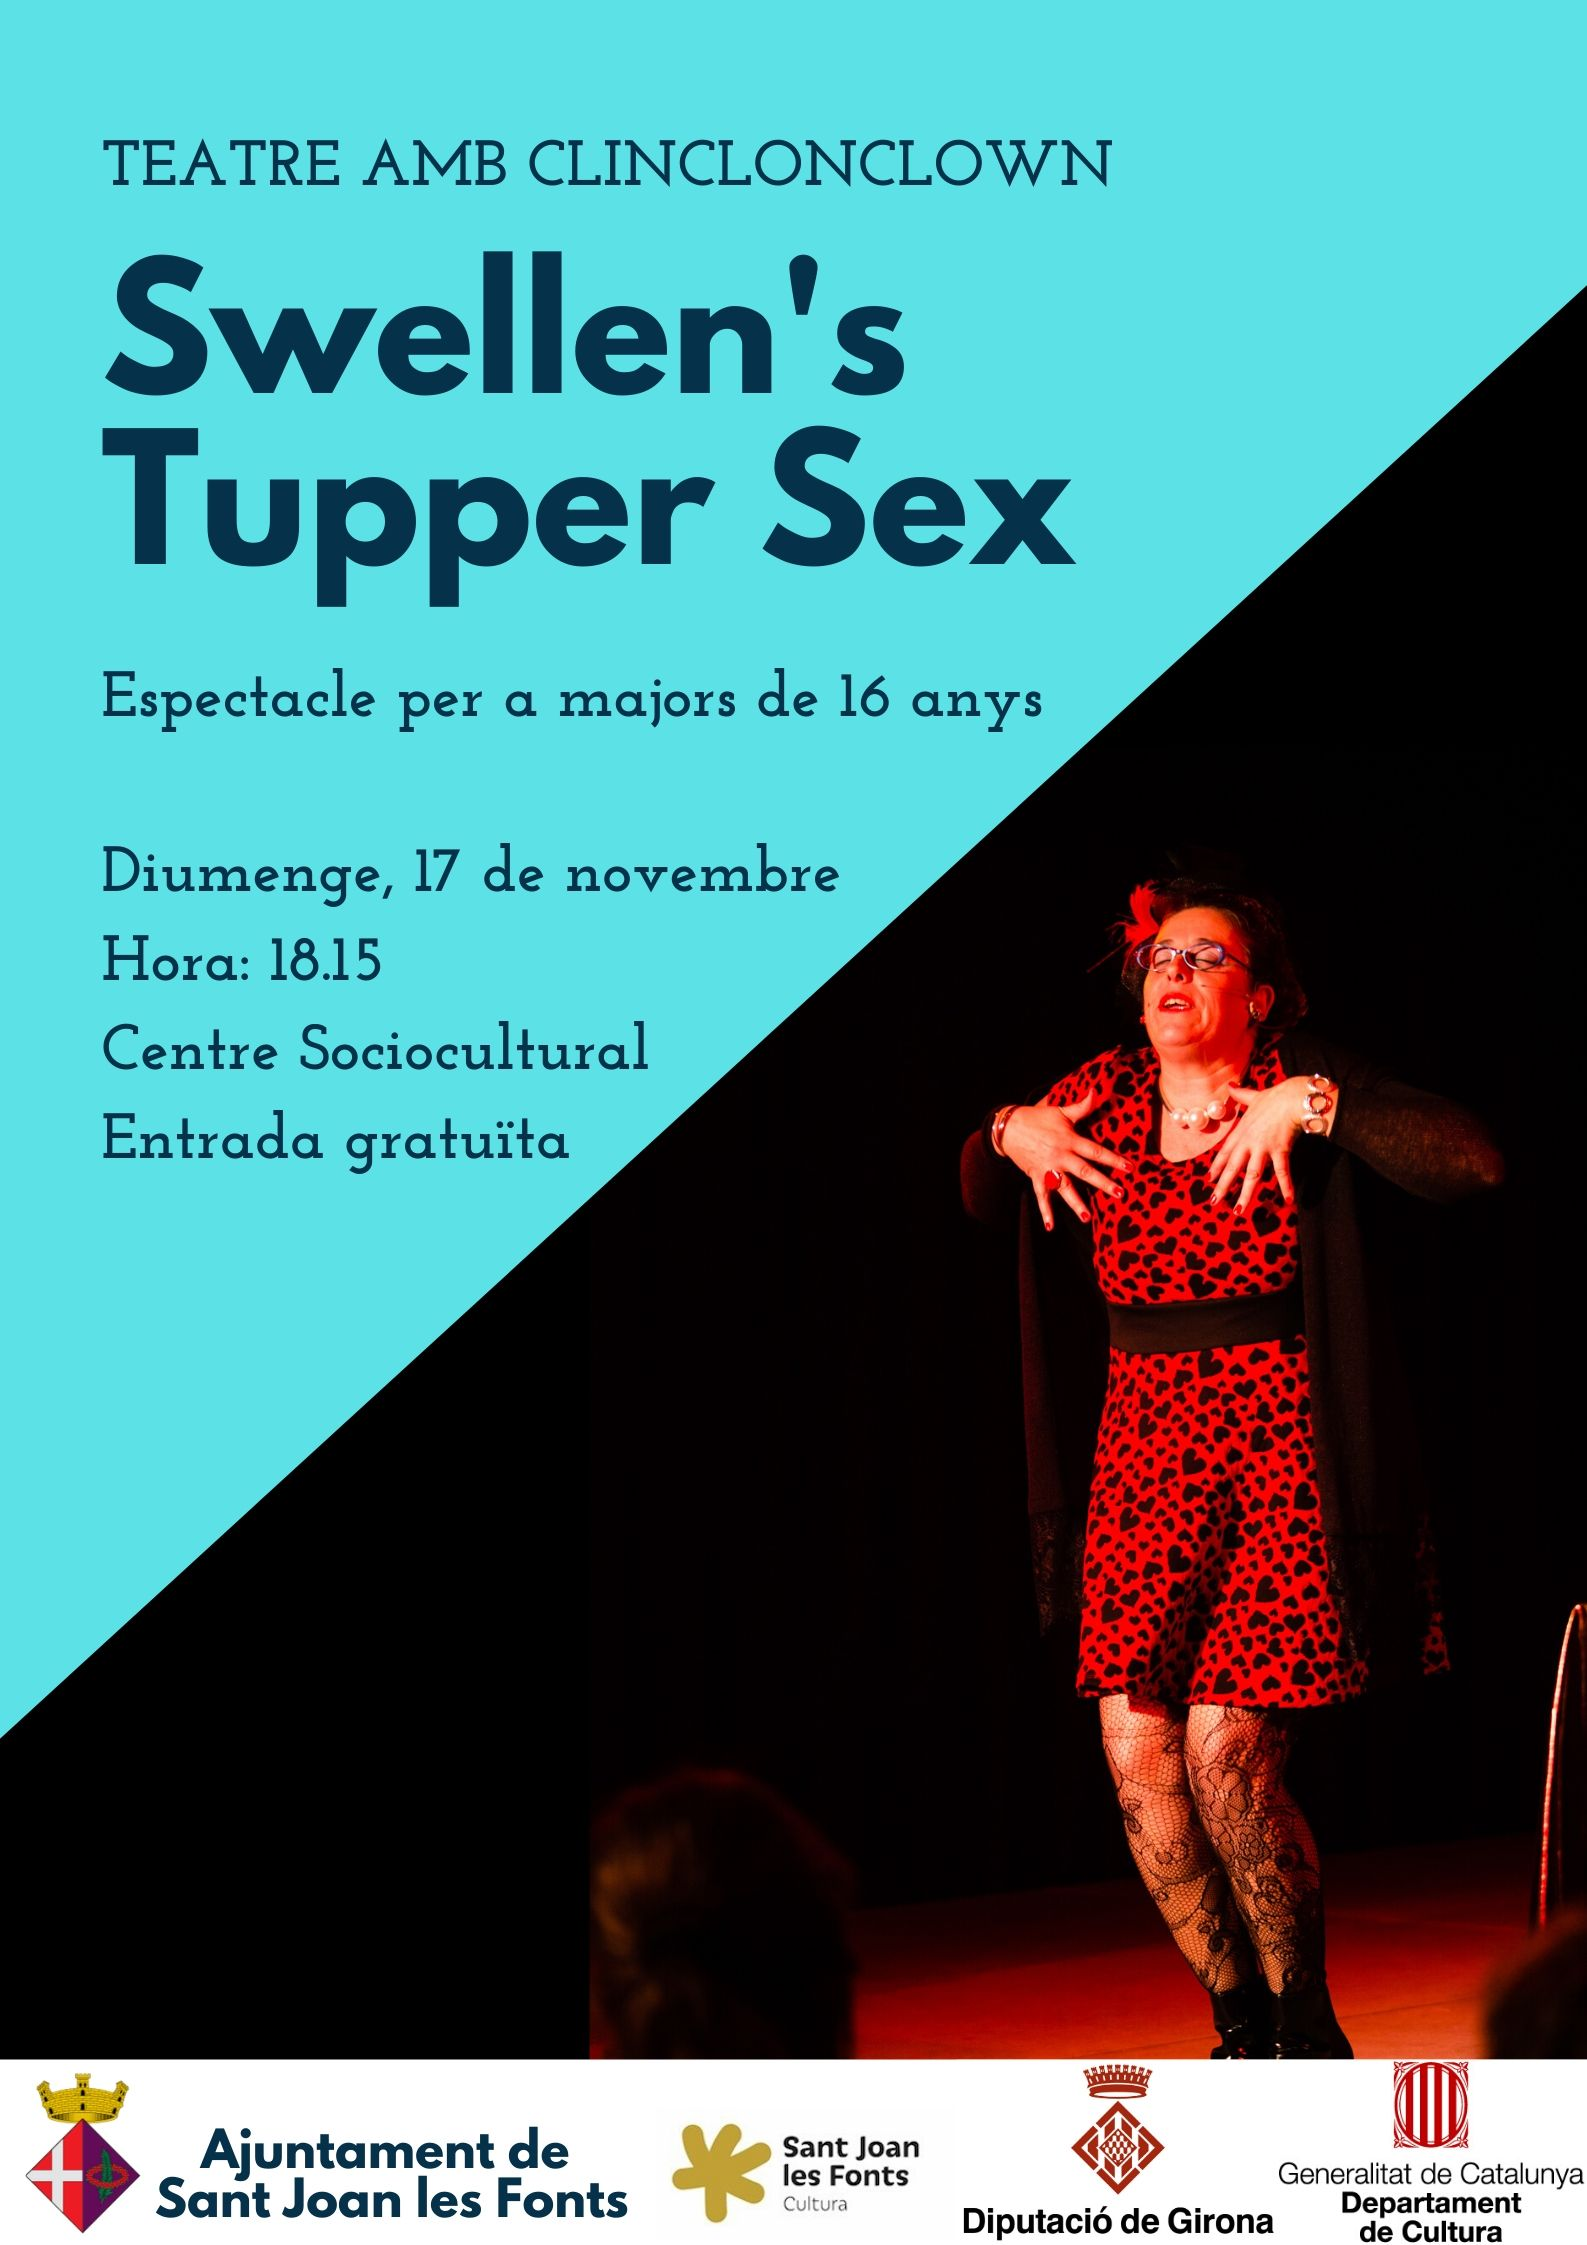 Swellen's Tupper Sex